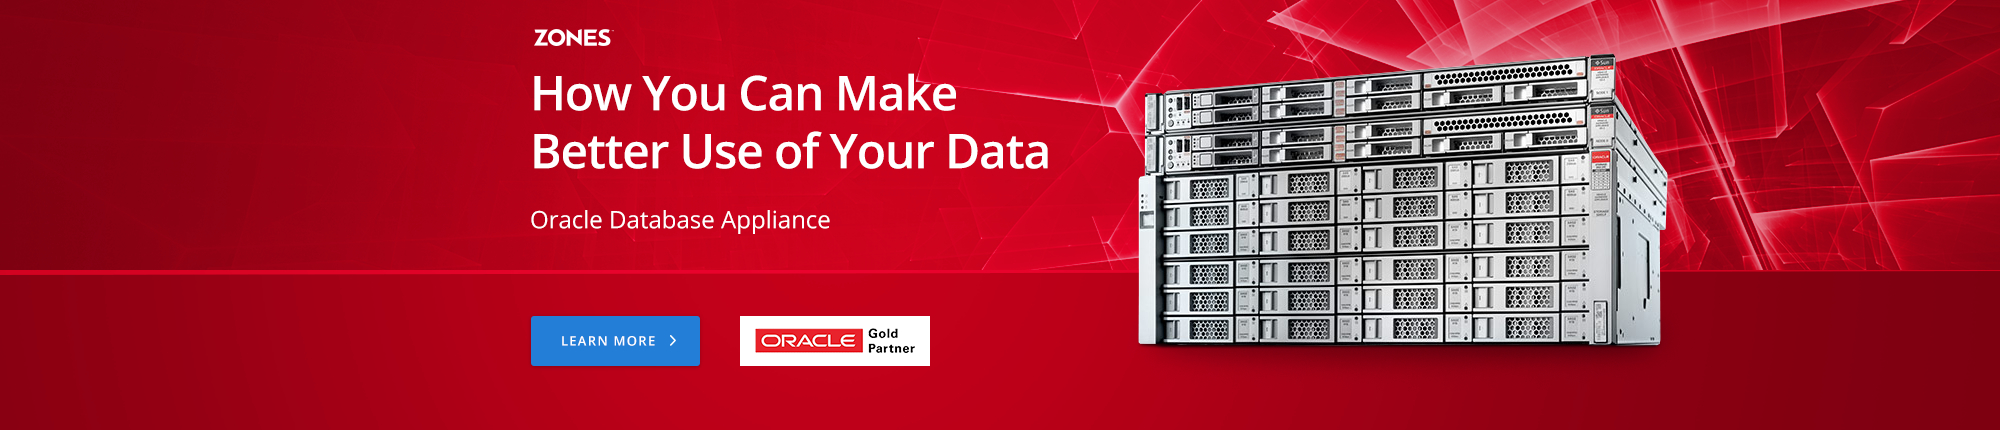 Oracle: How You Can Make Better Use of Your Data.